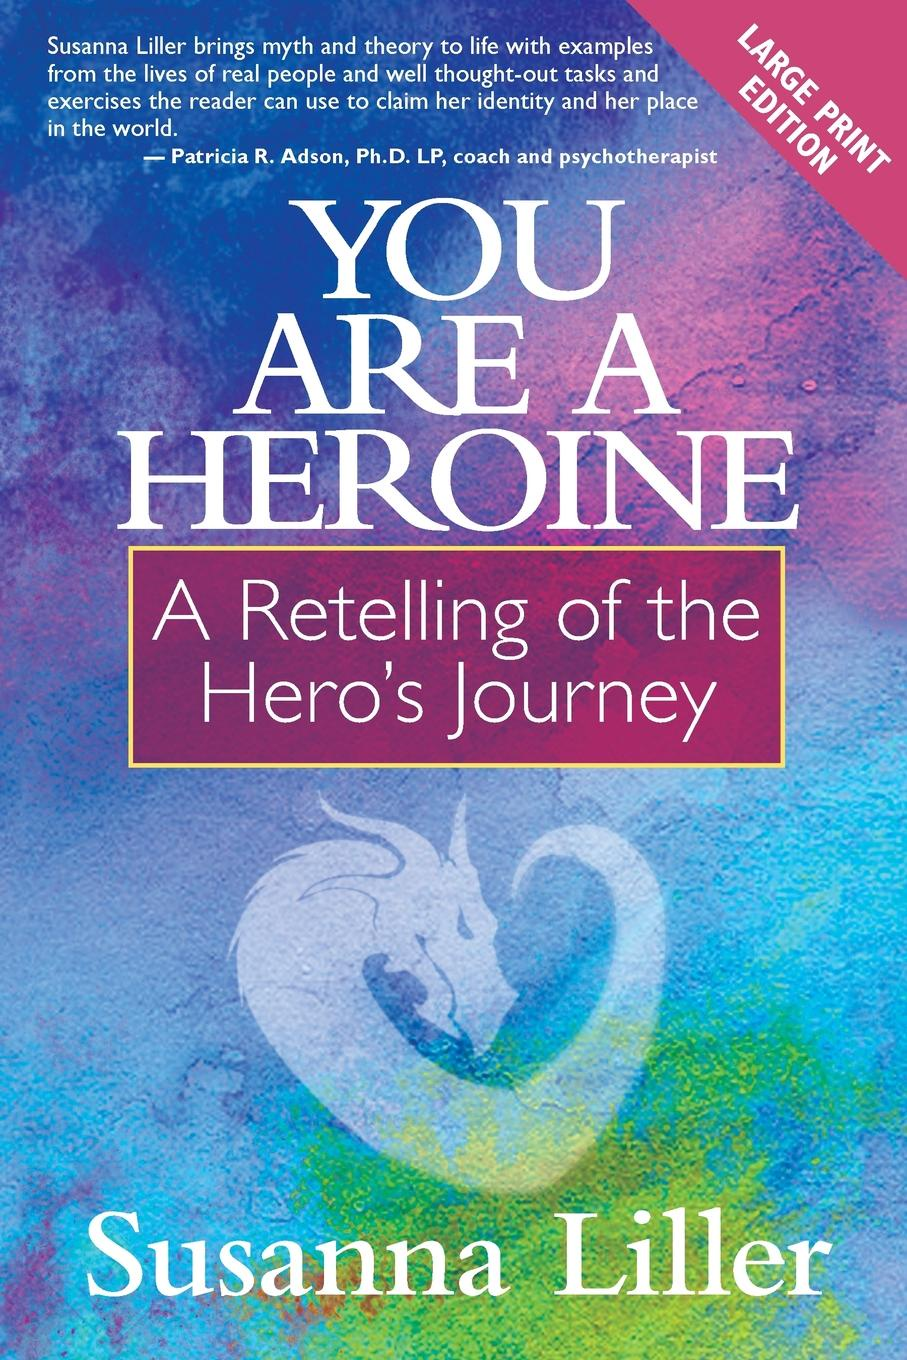 Susanna Liller You Are a Heroine. A Retelling of the Hero.s Journey heroine s journey